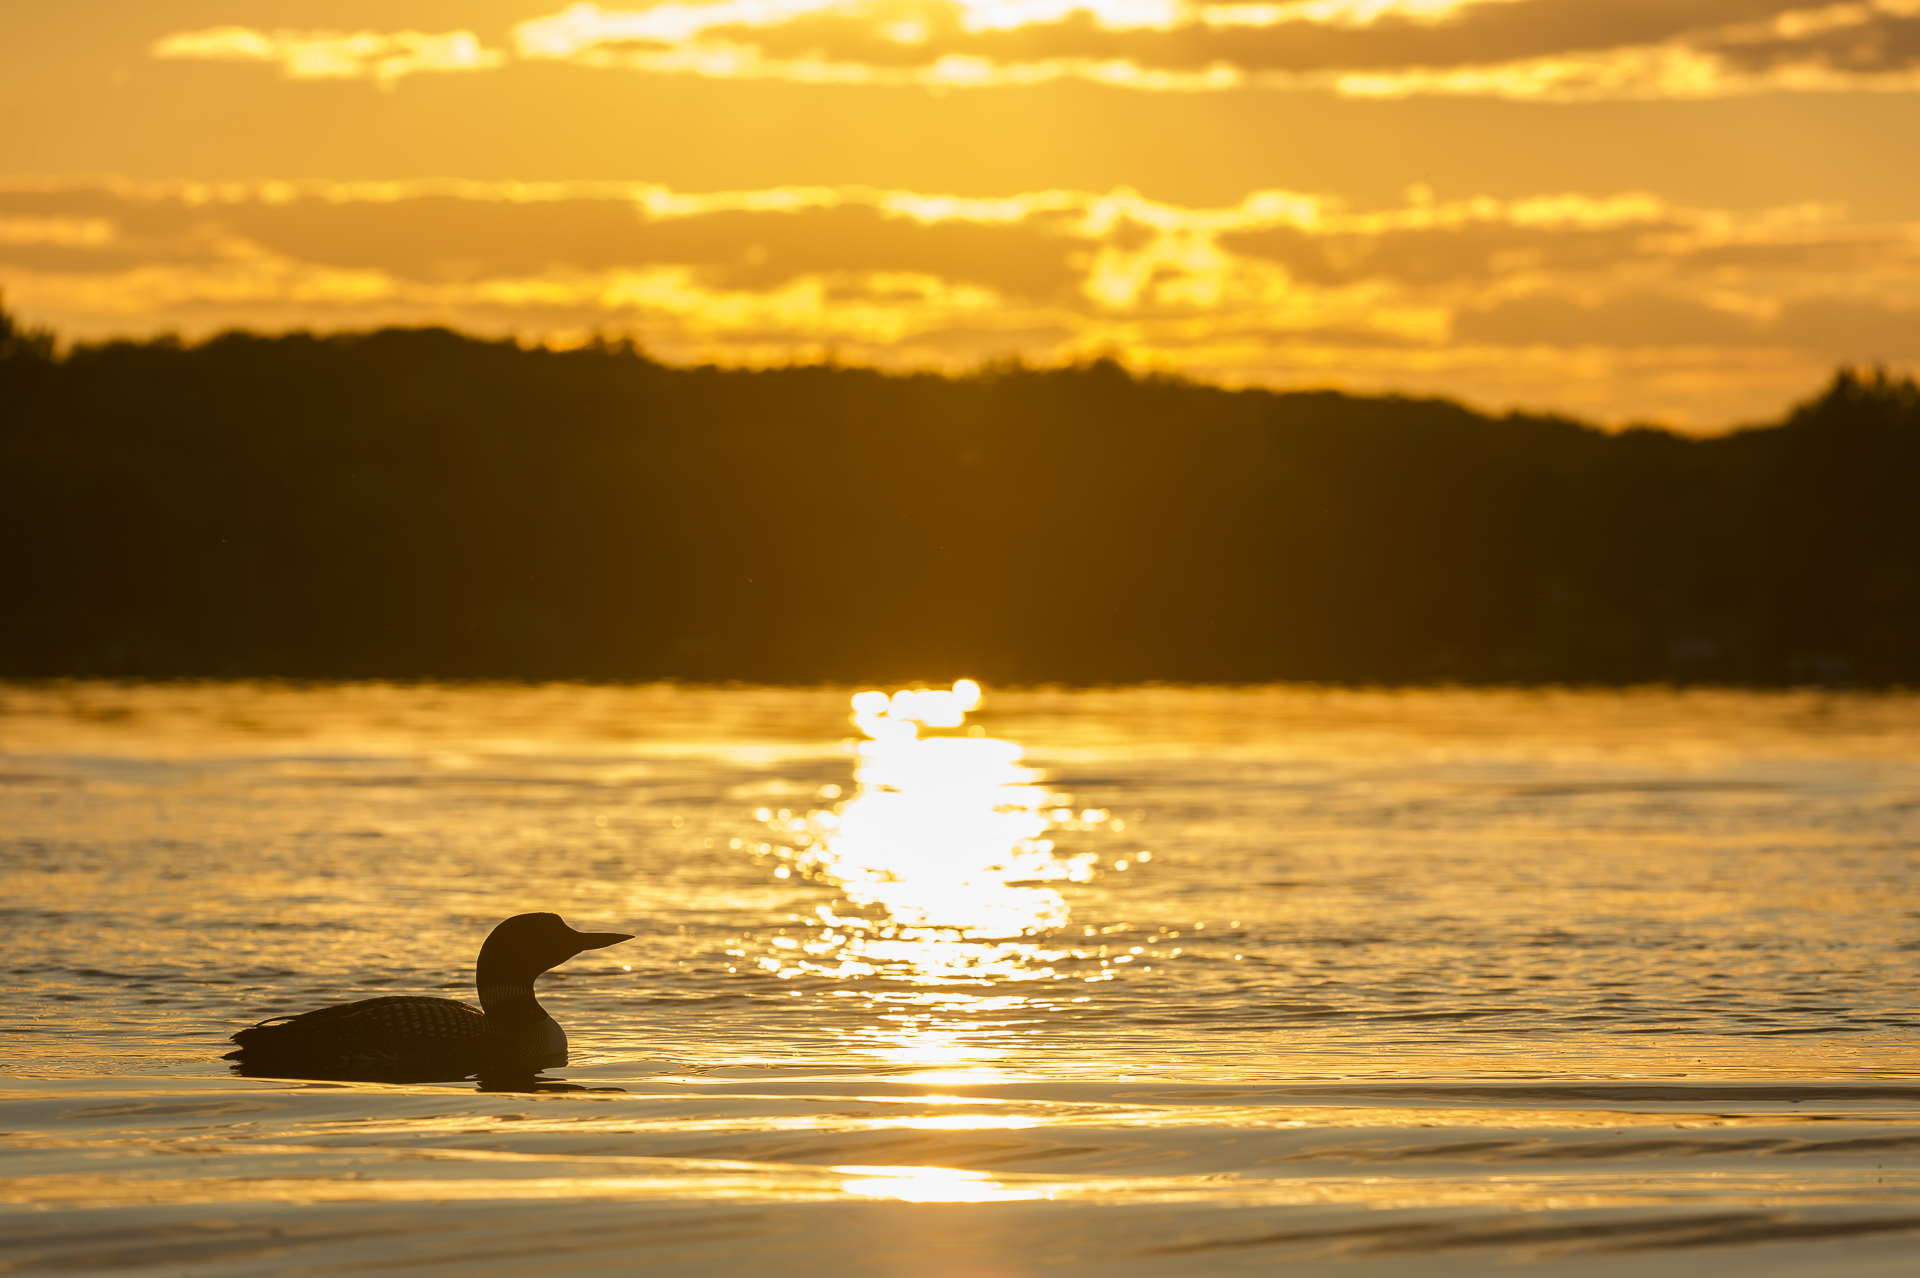 Loon sunset